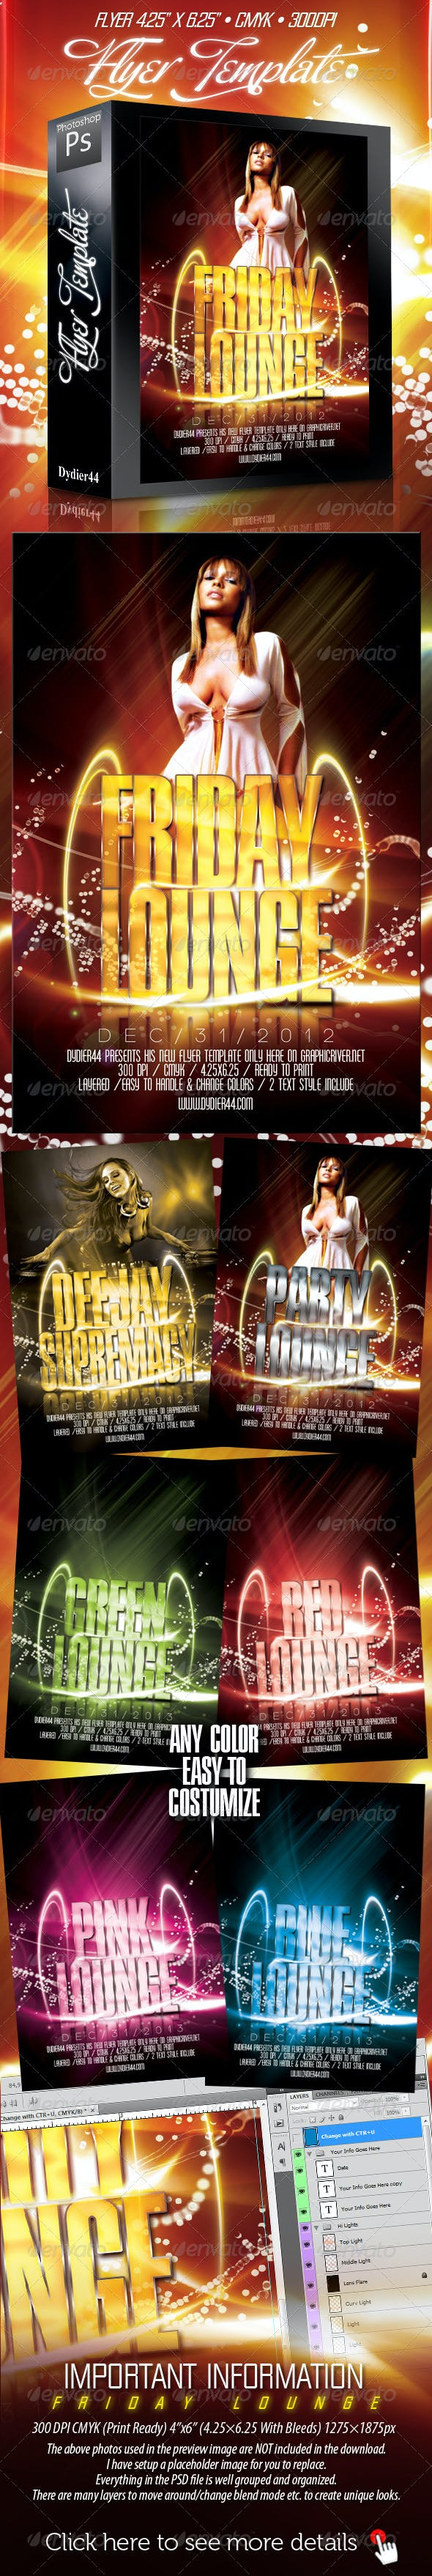 friday lounge flyer template 4x6 by dydier44 graphicriver